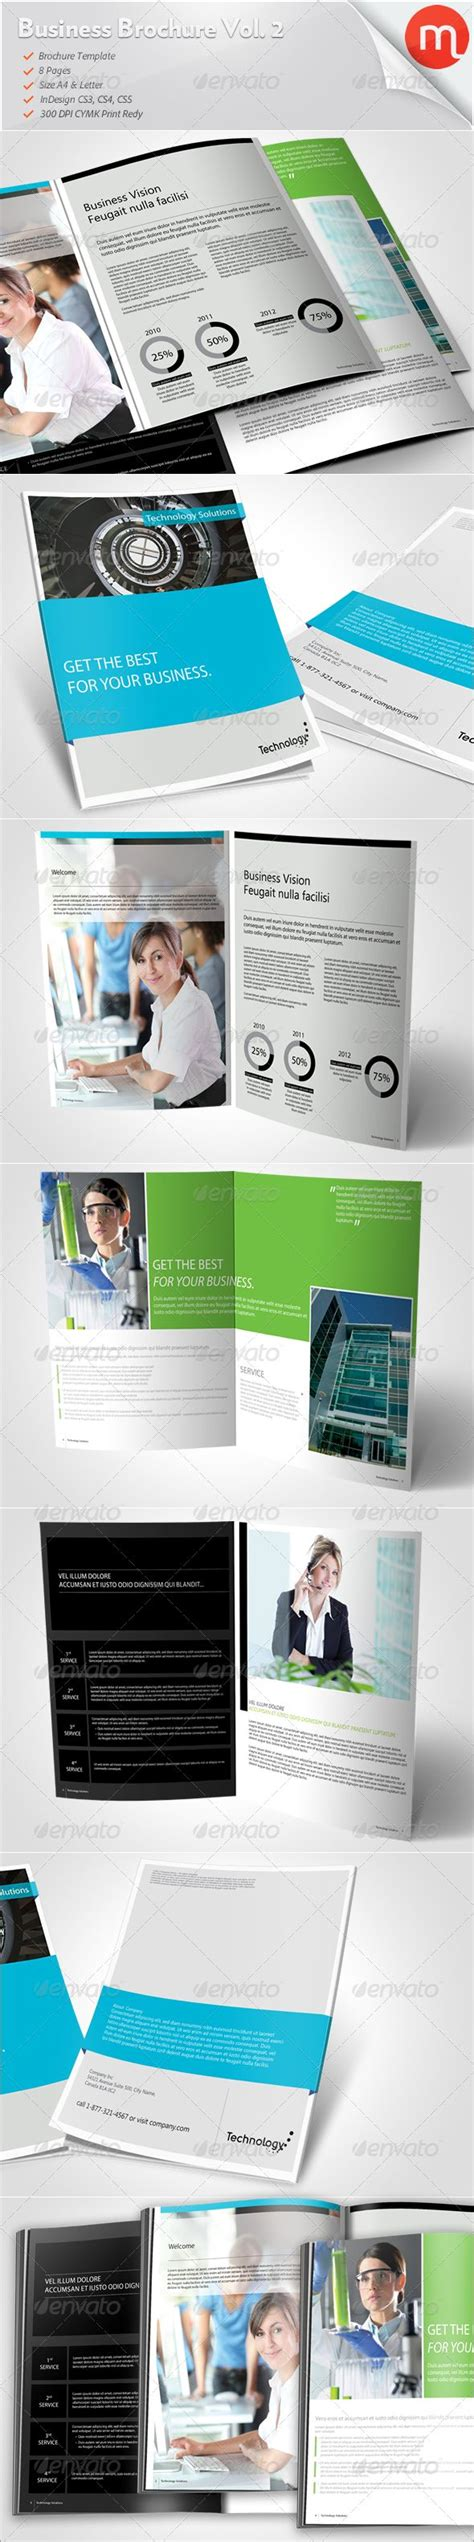 82 best images about print templates on pinterest